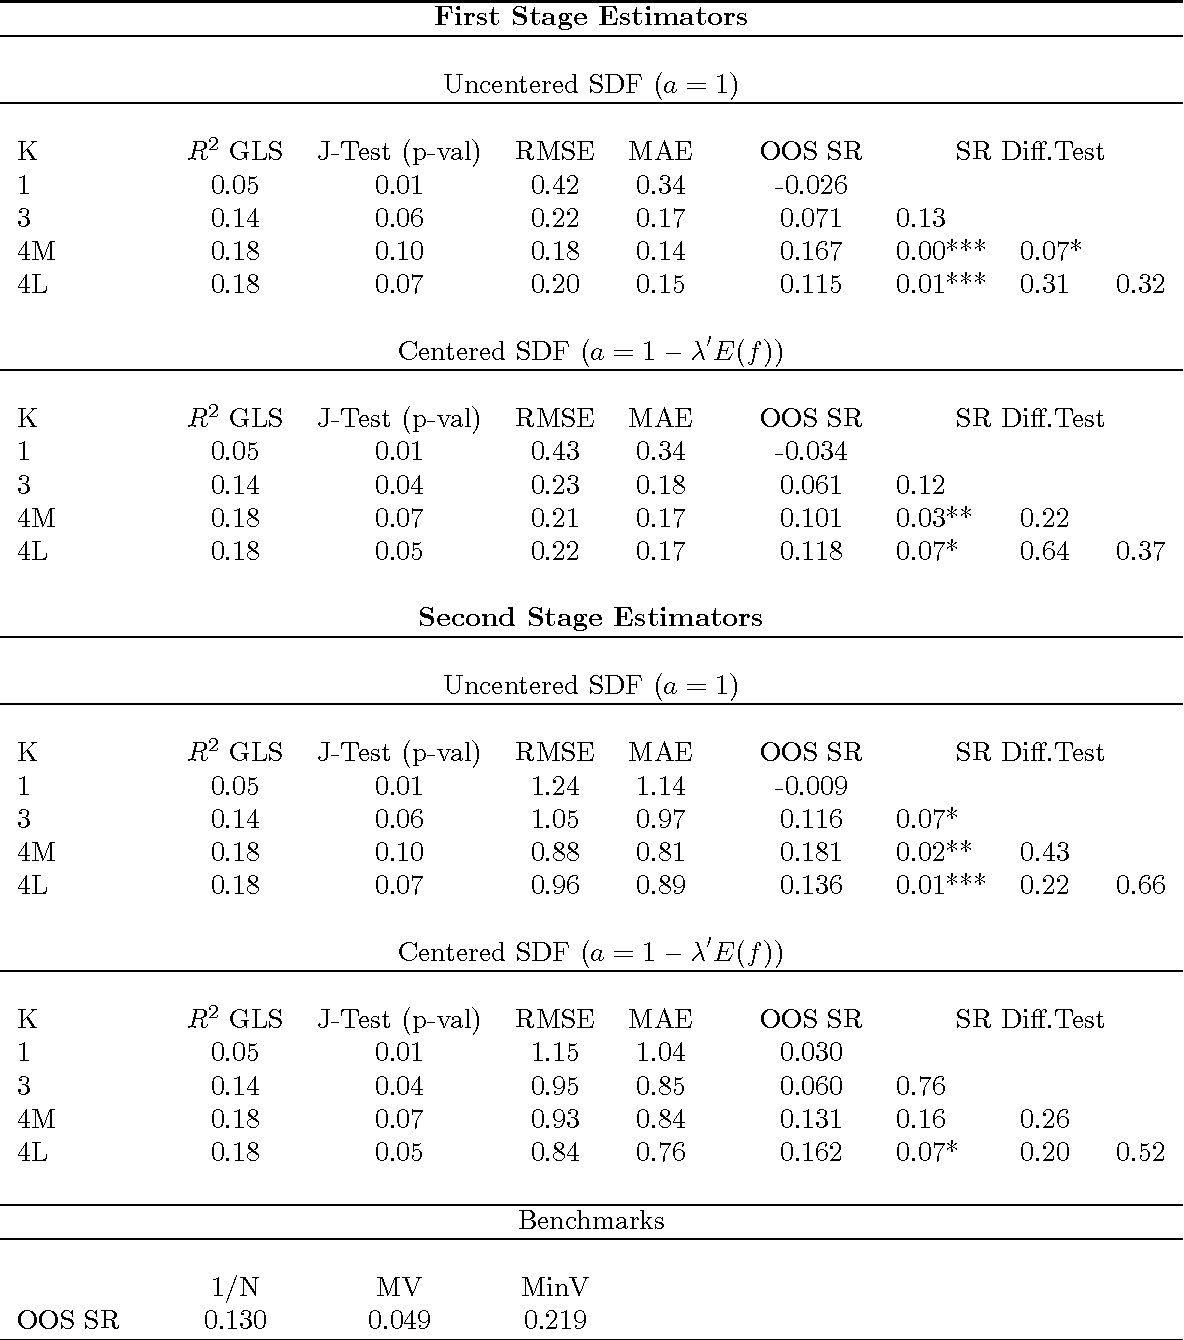 Table 8: Linear Asset Pricing Model Estimation and MV Portfolio Performance